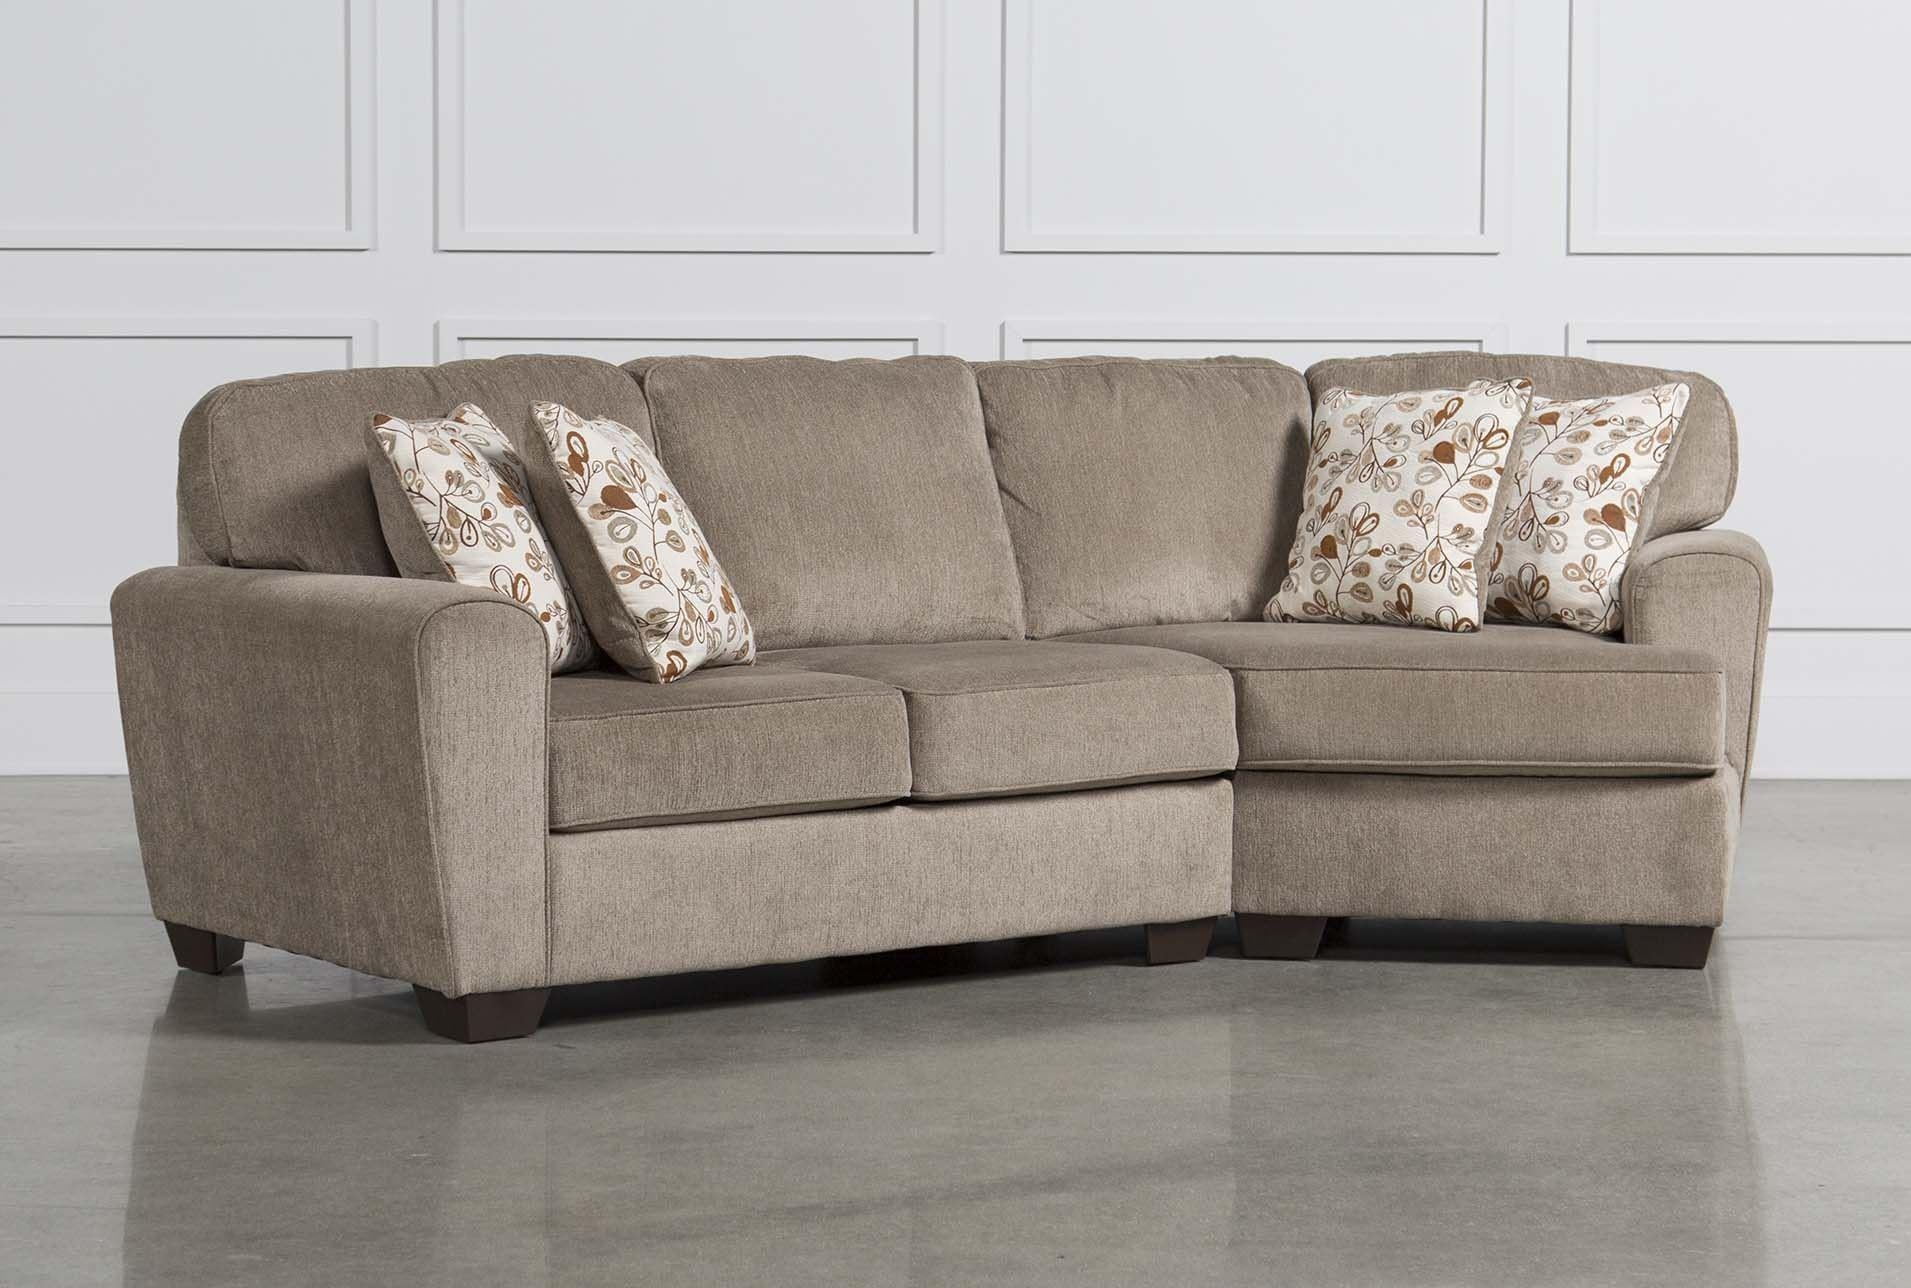 Luxury Eco Friendly Sectional Sofa 52 On Sectional Sofas For Less With Eco Friendly Sectional Sofa (Image 11 of 15)